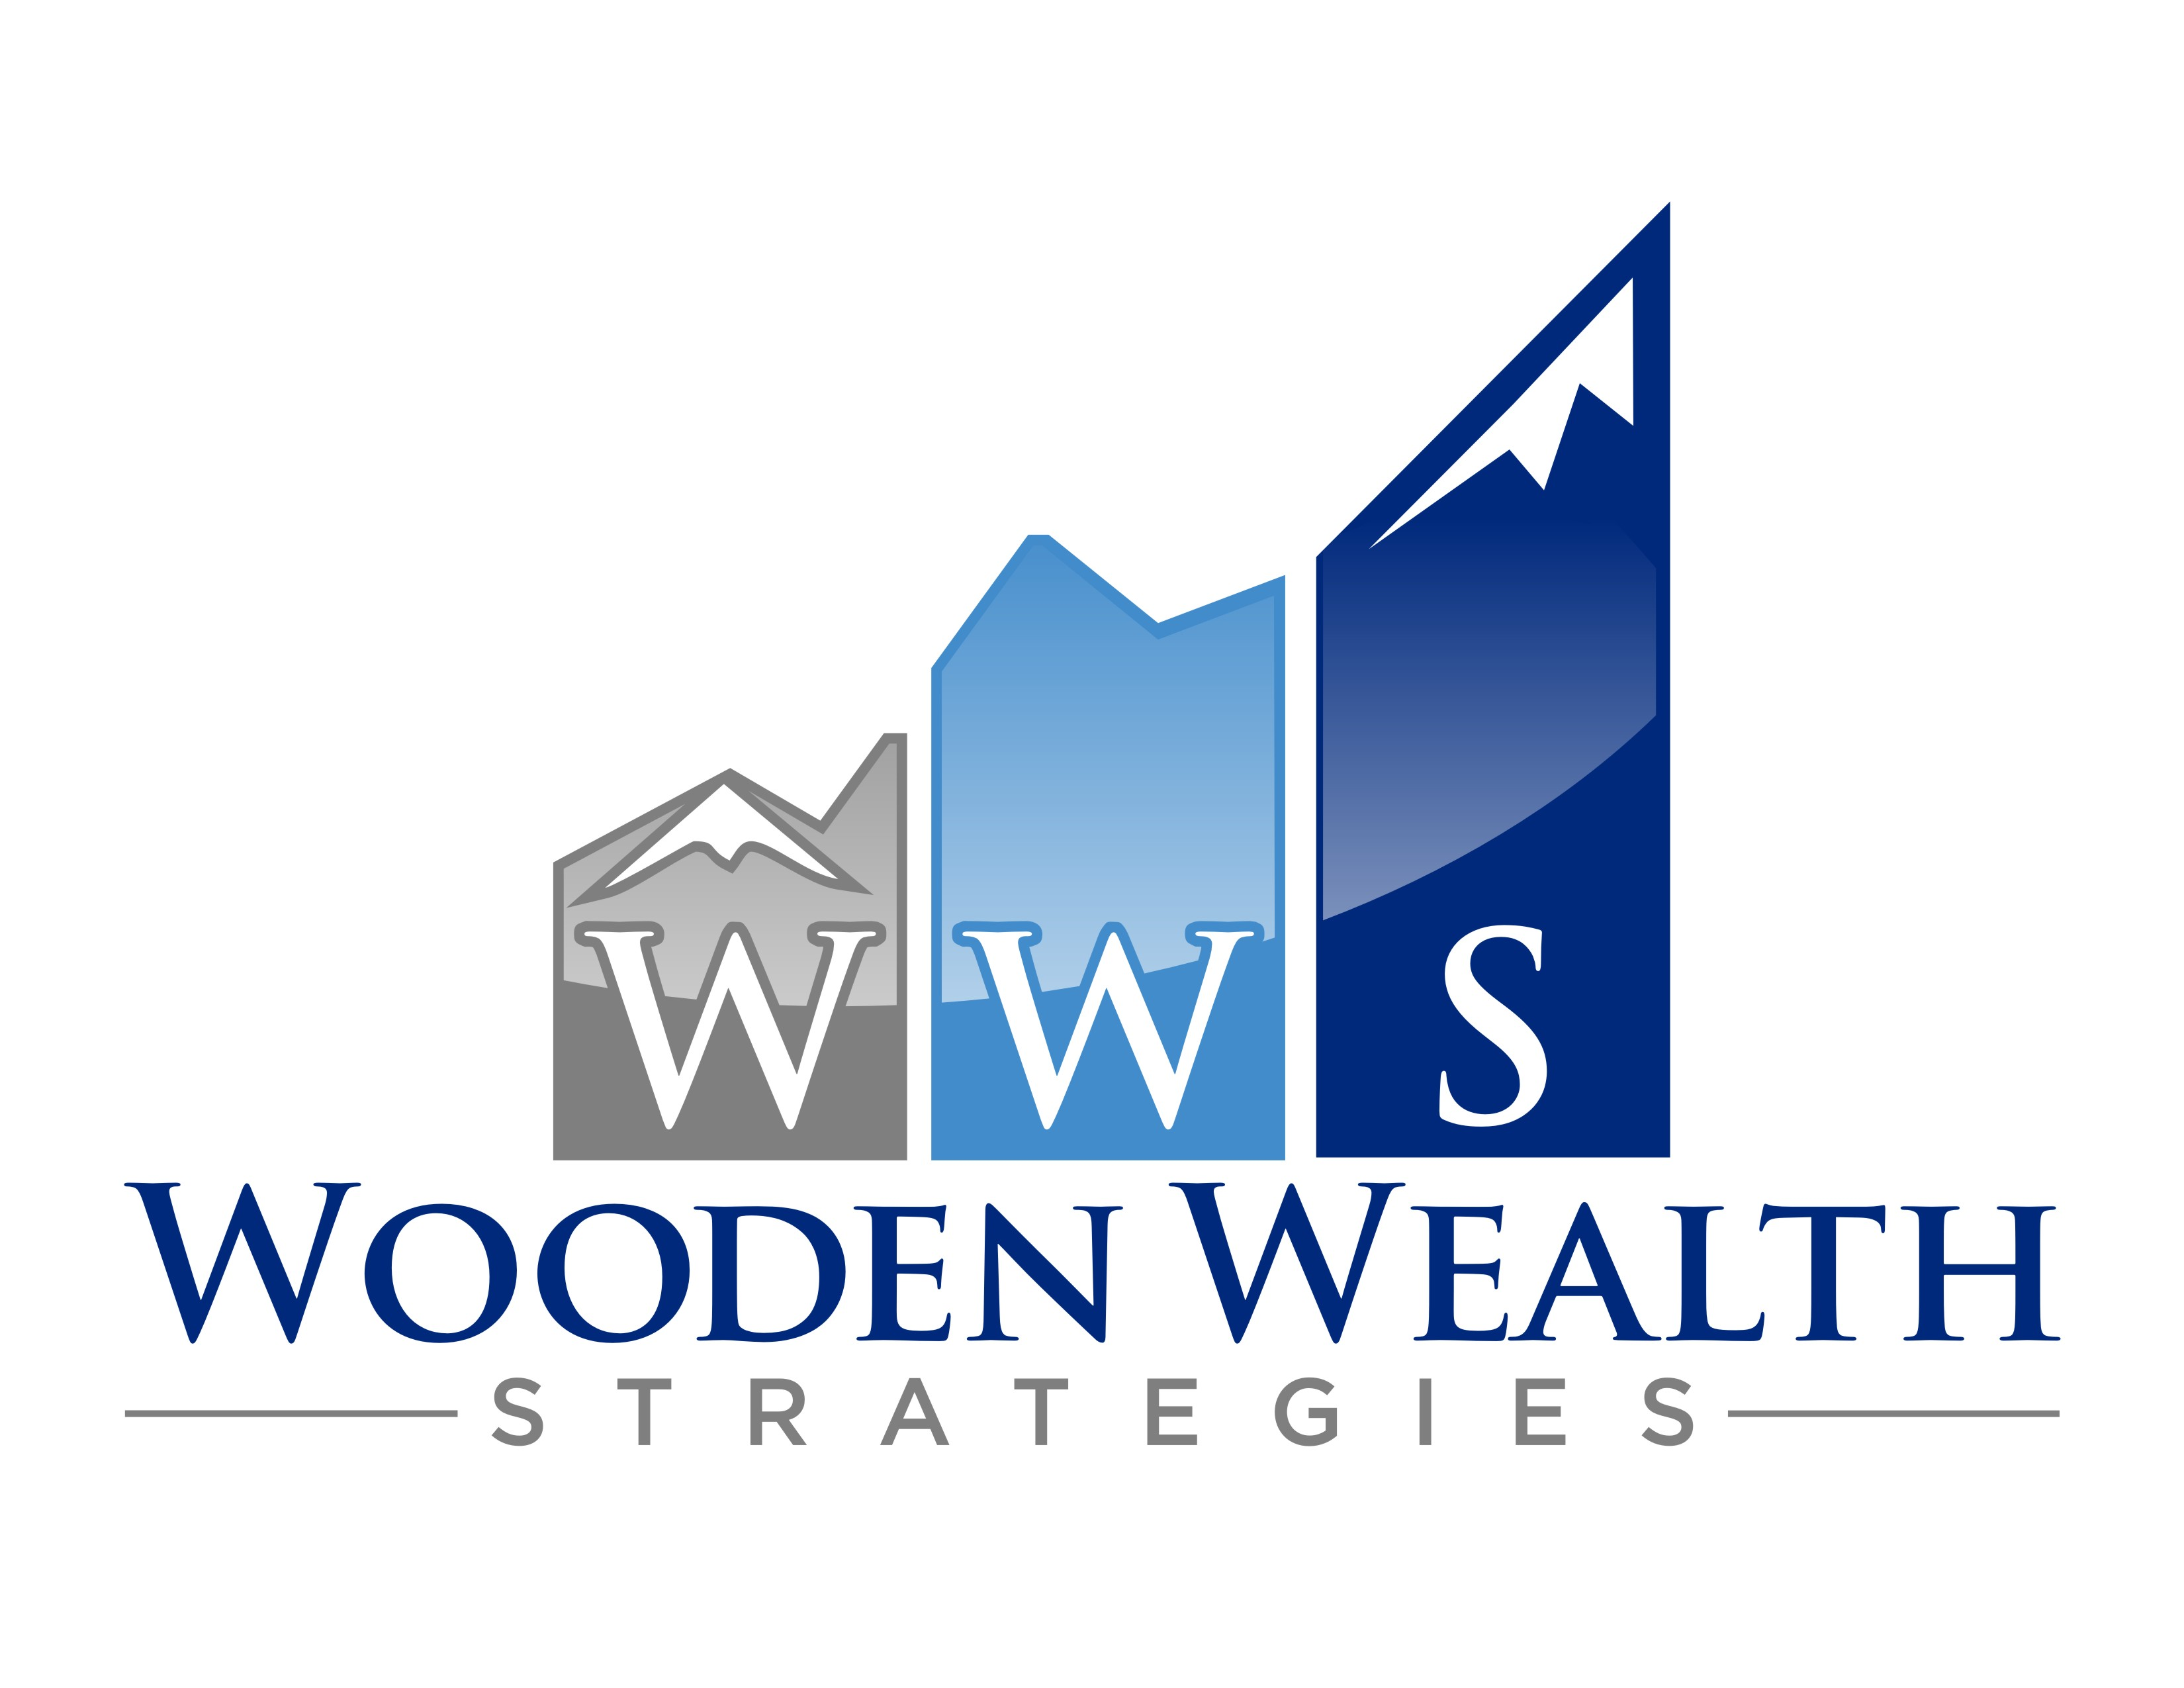 Wooden Wealth Strategies, a Doral Chamber of Commerce member.